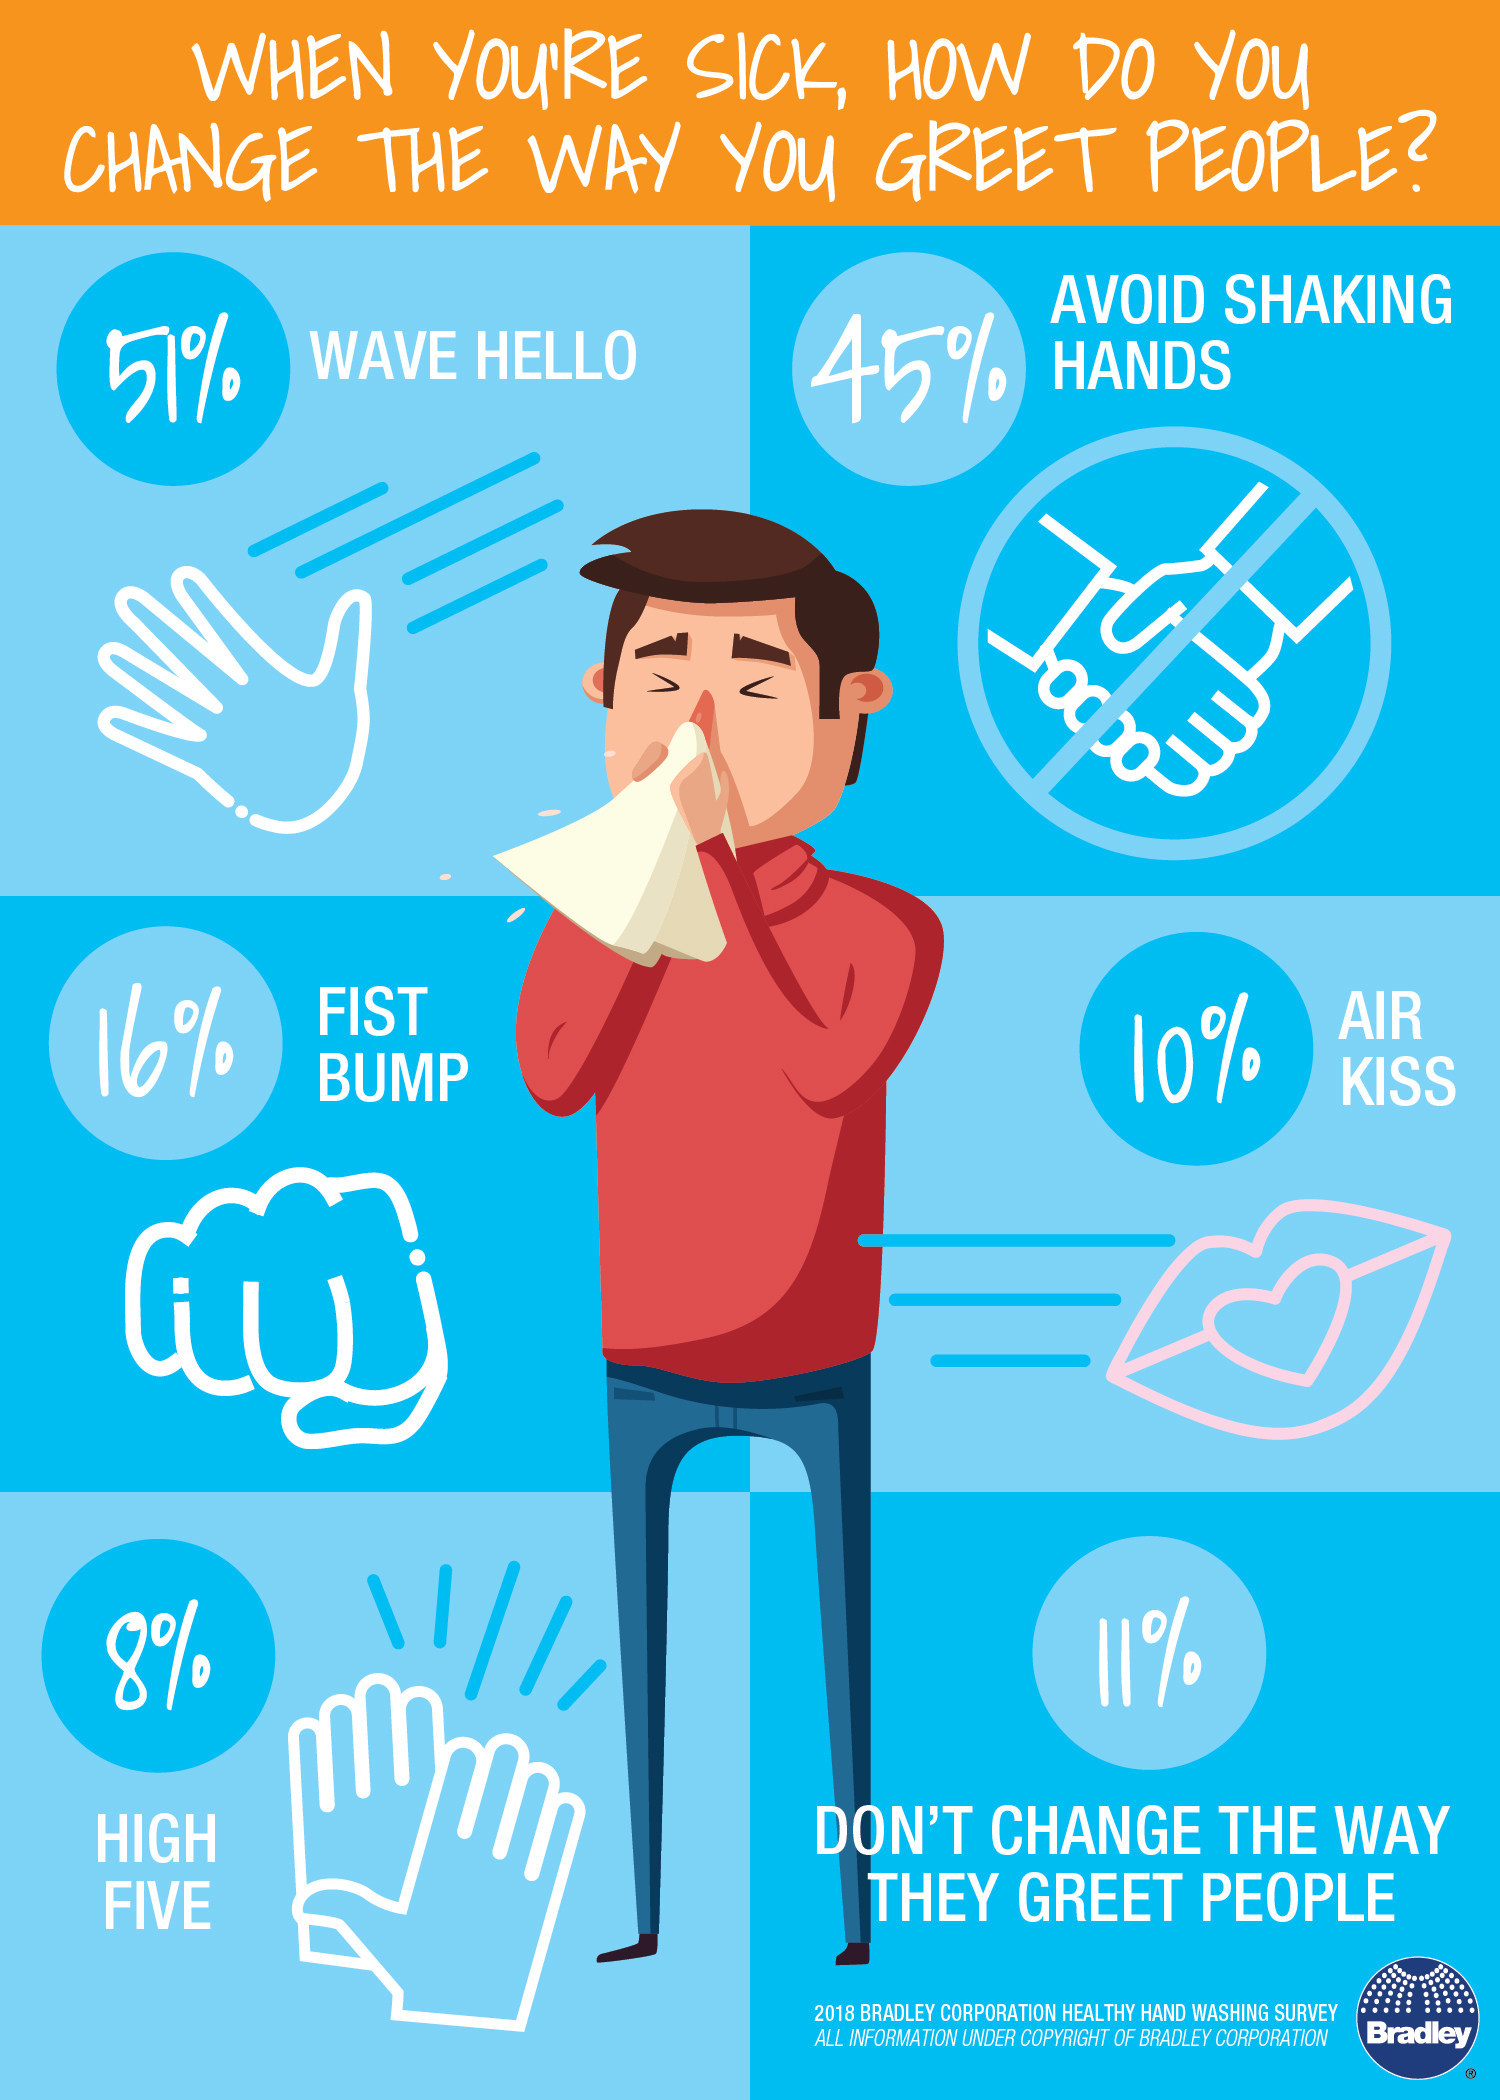 Infographic from Bradley with methods of greeting